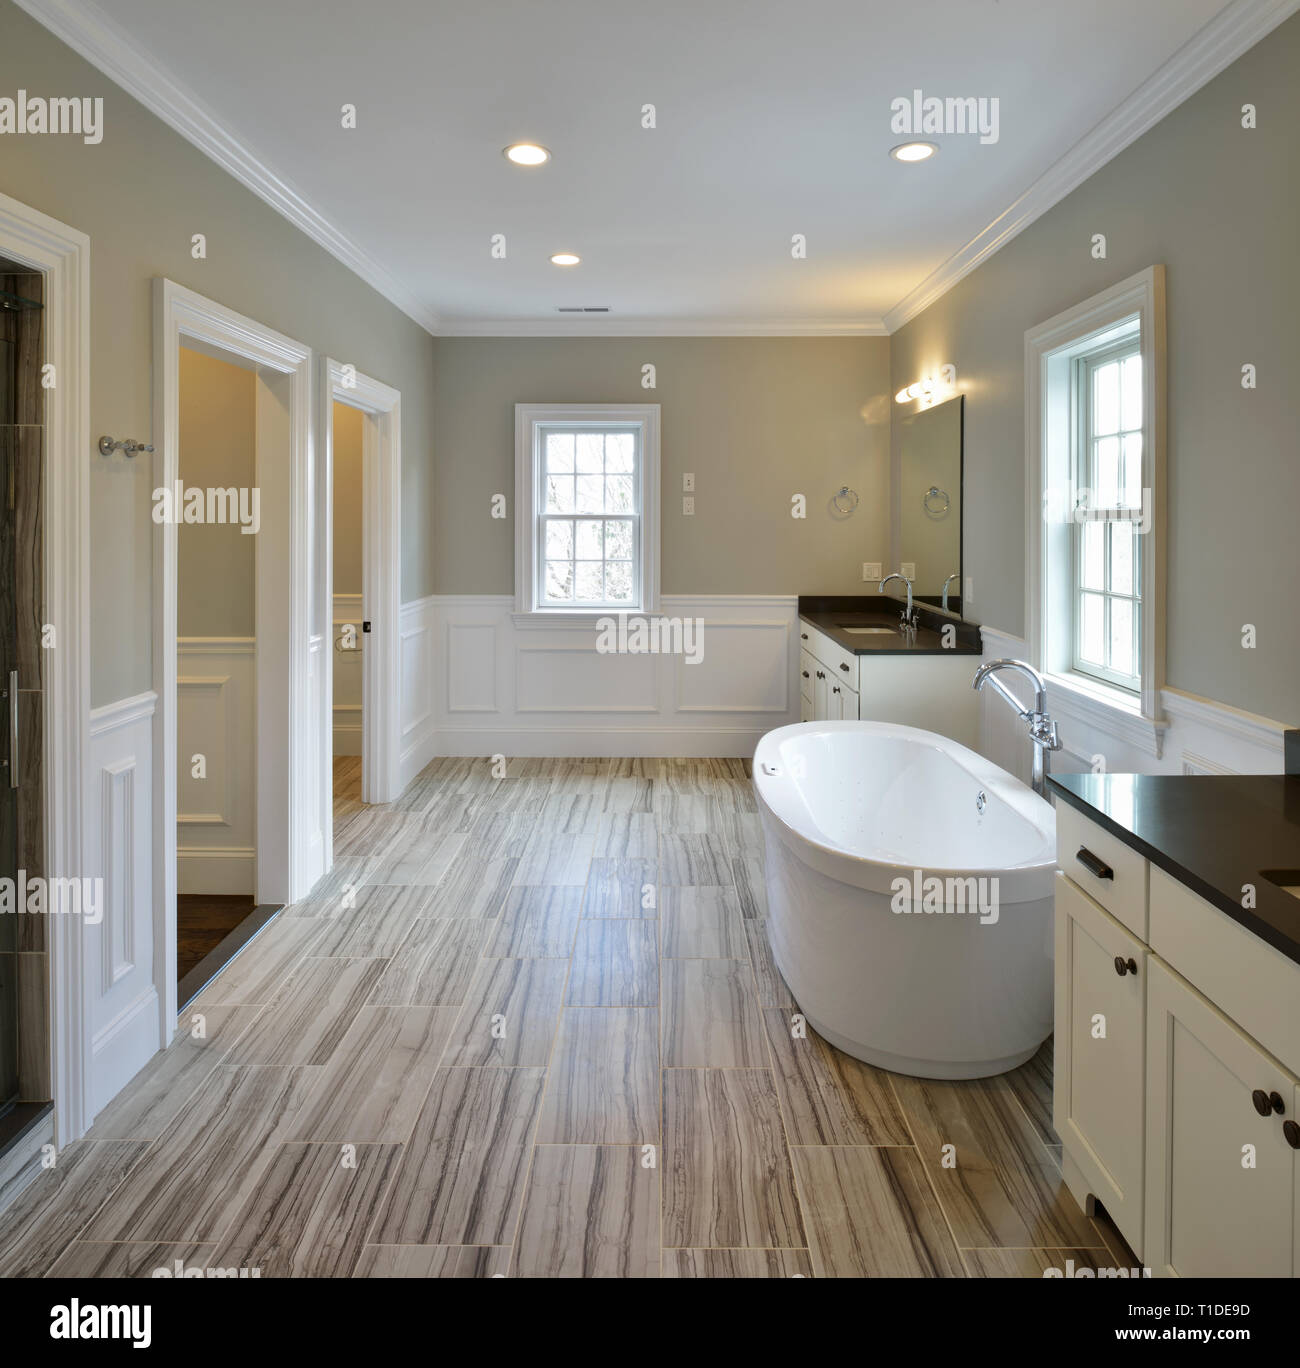 Modern Master Bathroom Design With Freestanding Bathtub Separated Sink Vanities Shower And Toilet Rooms Stock Photo Alamy